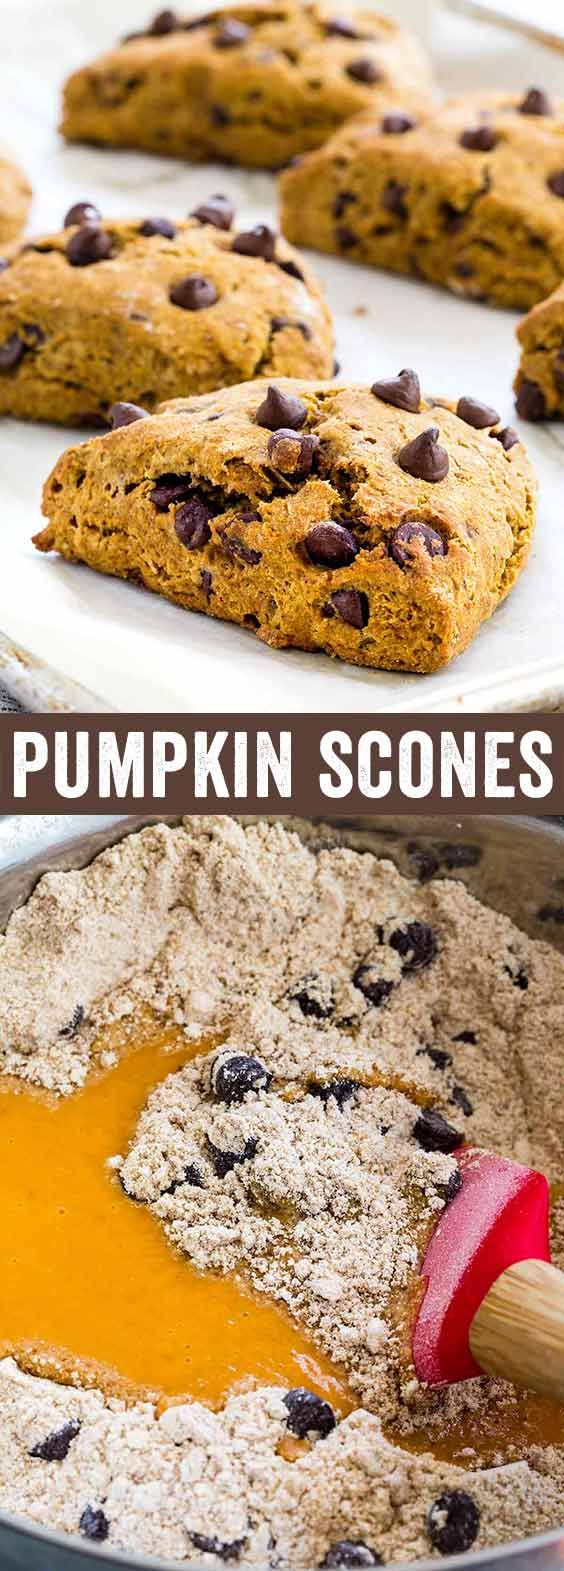 A lightened up pumpkin scones recipe with dark chocolate chips. Made with whole wheat flour, coconut sugar, and coconut oil for a healthier twist.